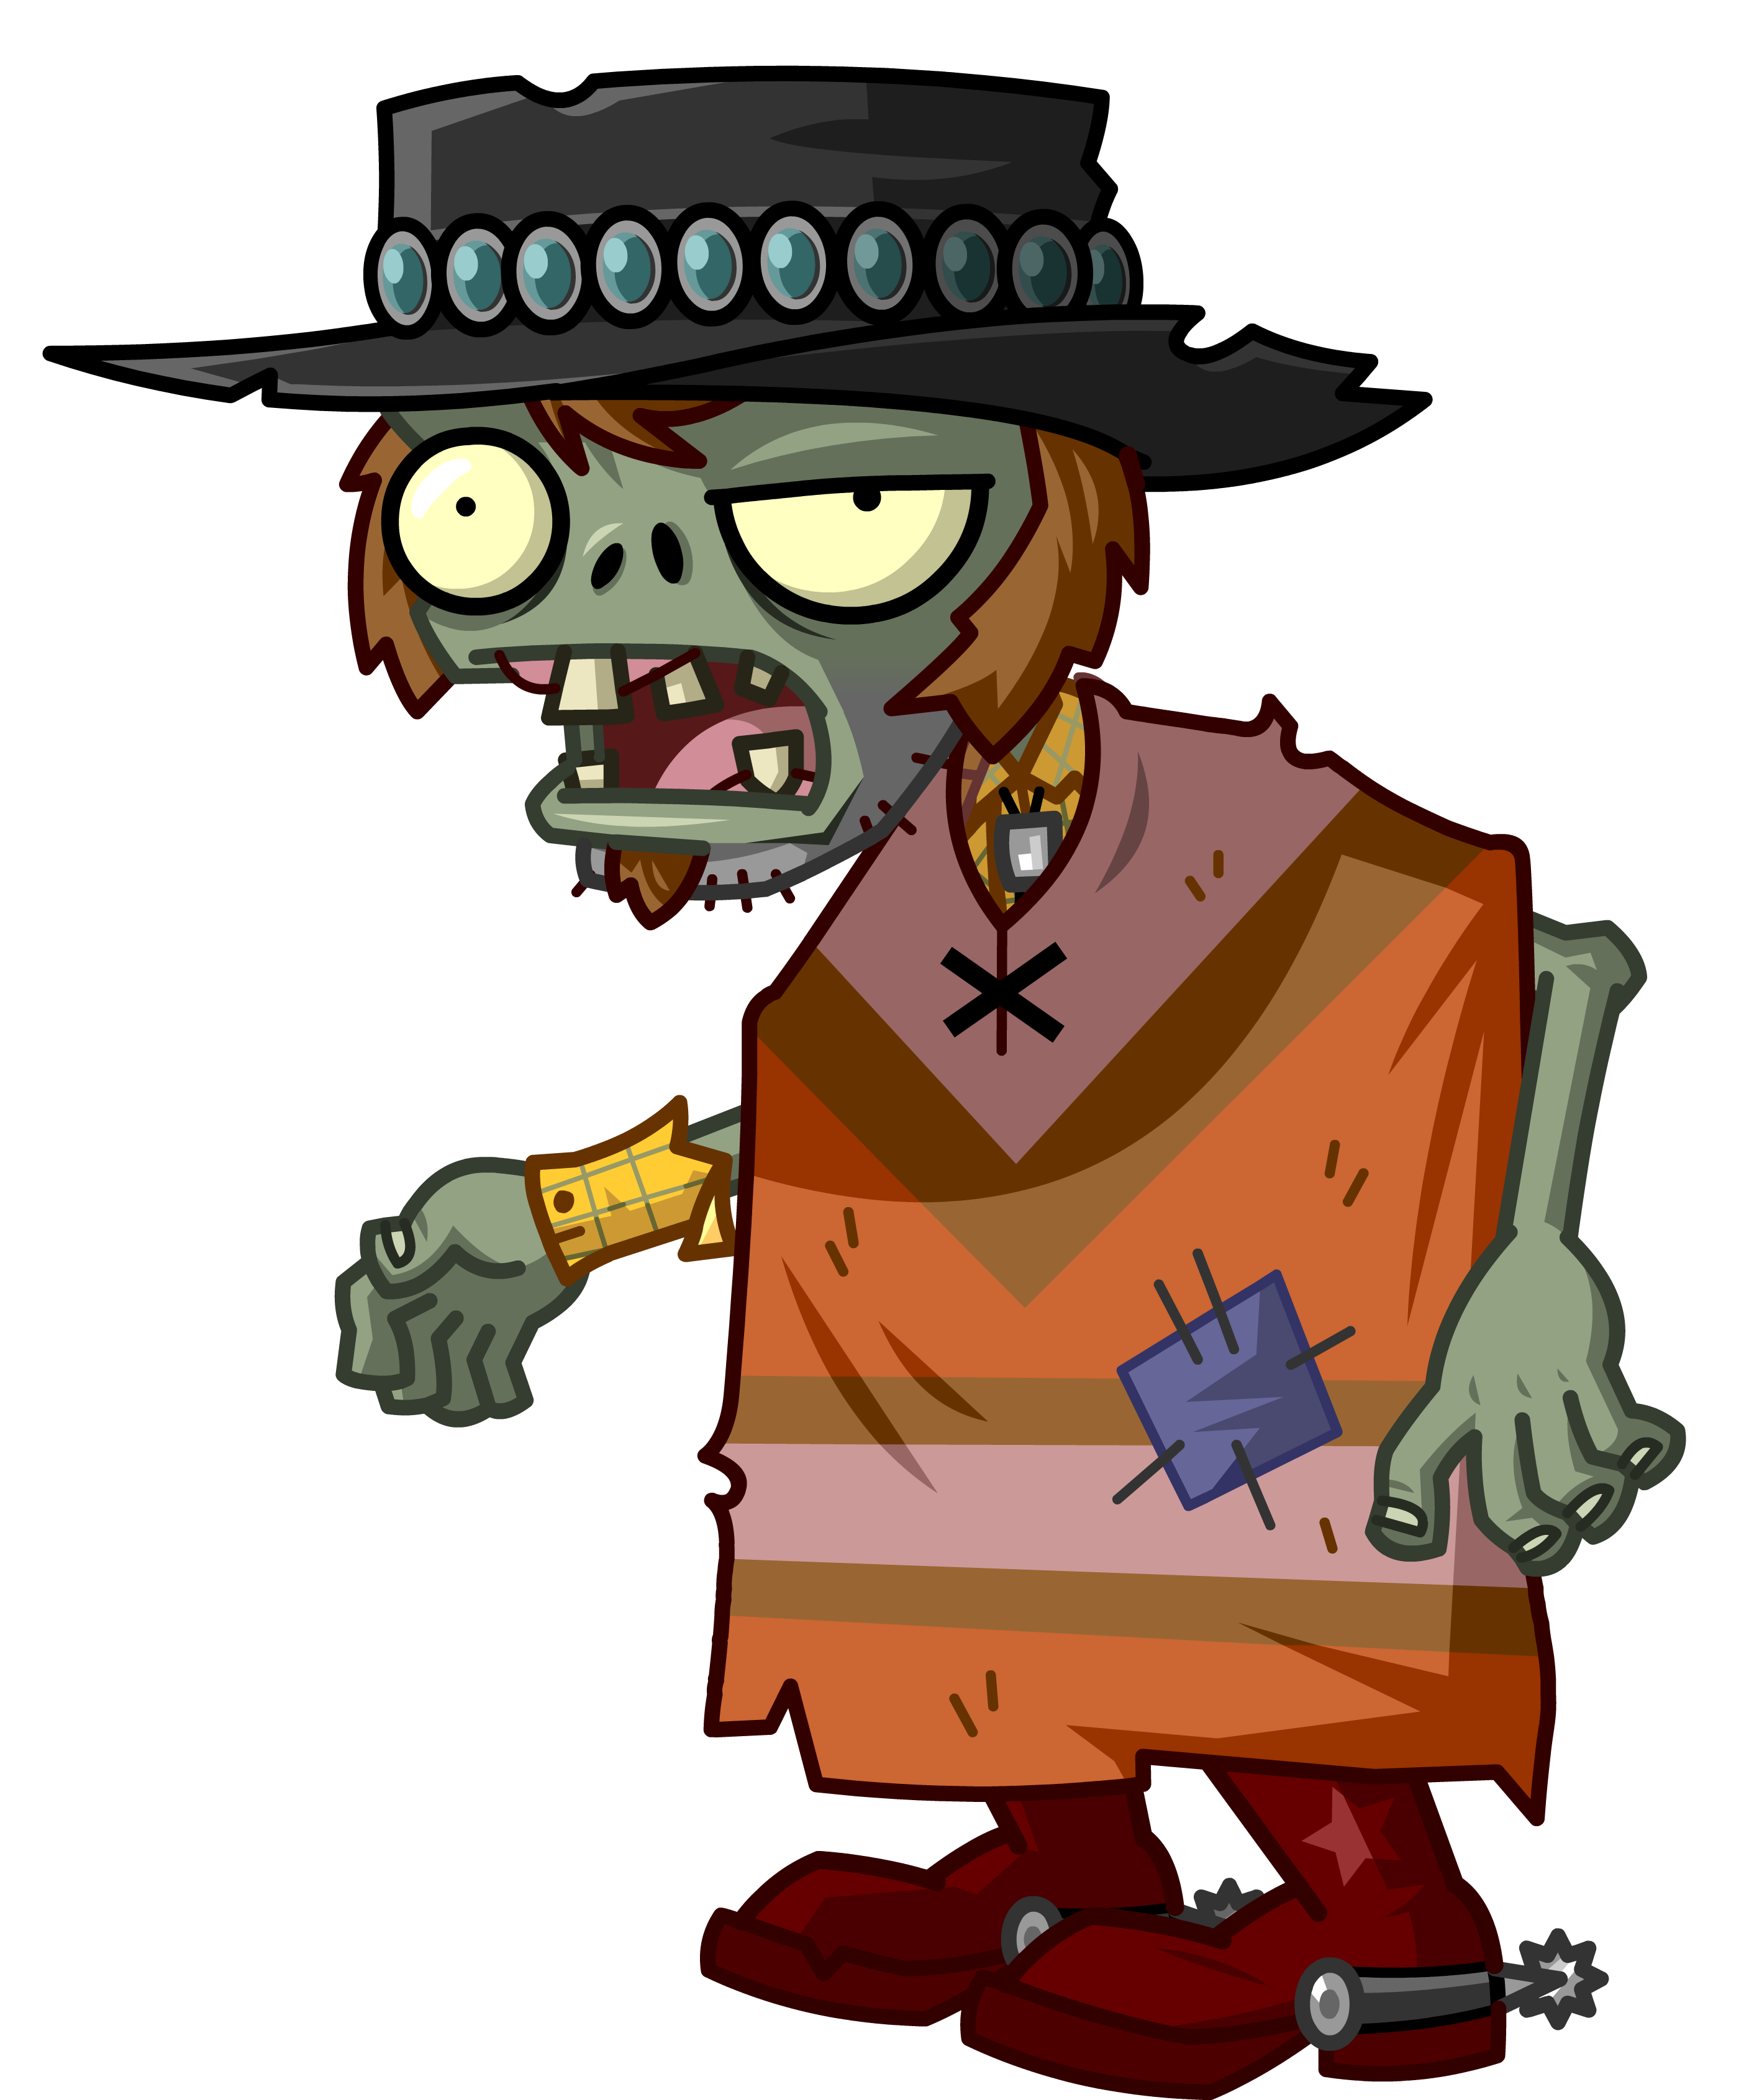 Plants vs zombies zombie png. It s about time